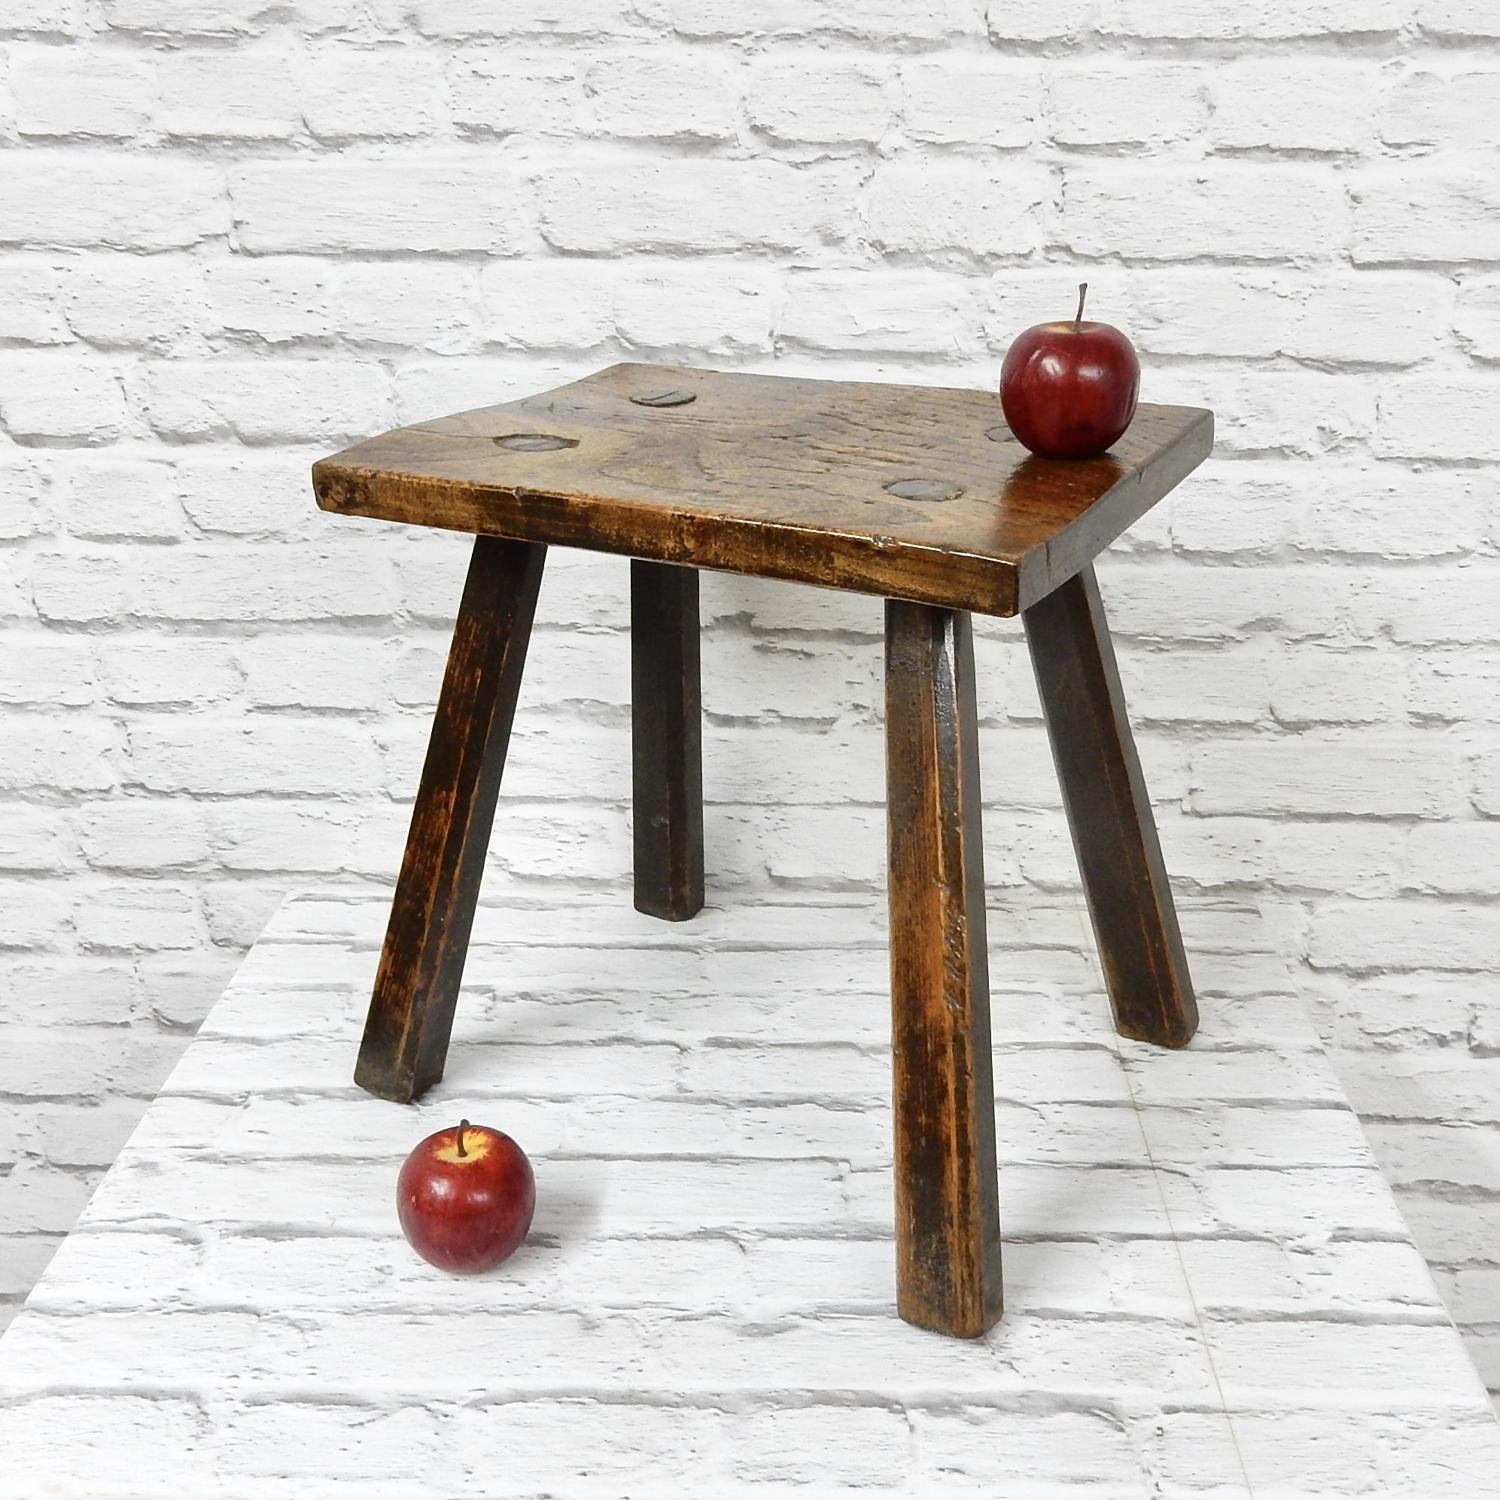 Early C19th Stool